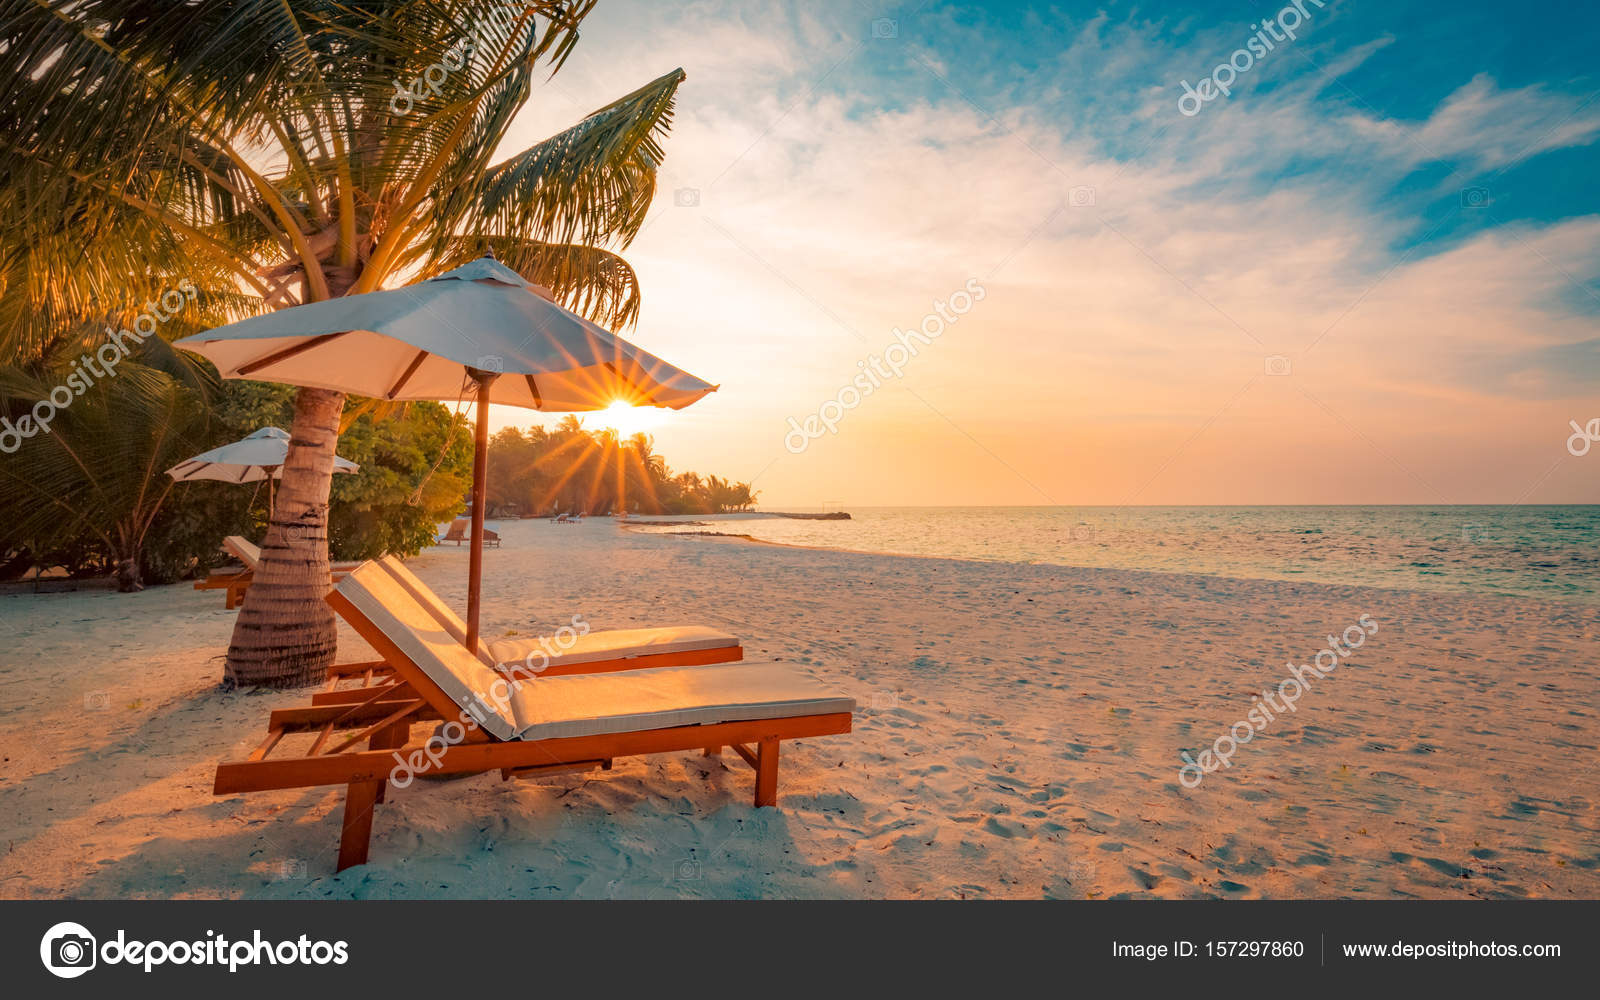 Beach background beautiful beach landscape tropical nature scene beach background beautiful beach landscape tropical nature scene palm trees and blue sky voltagebd Images